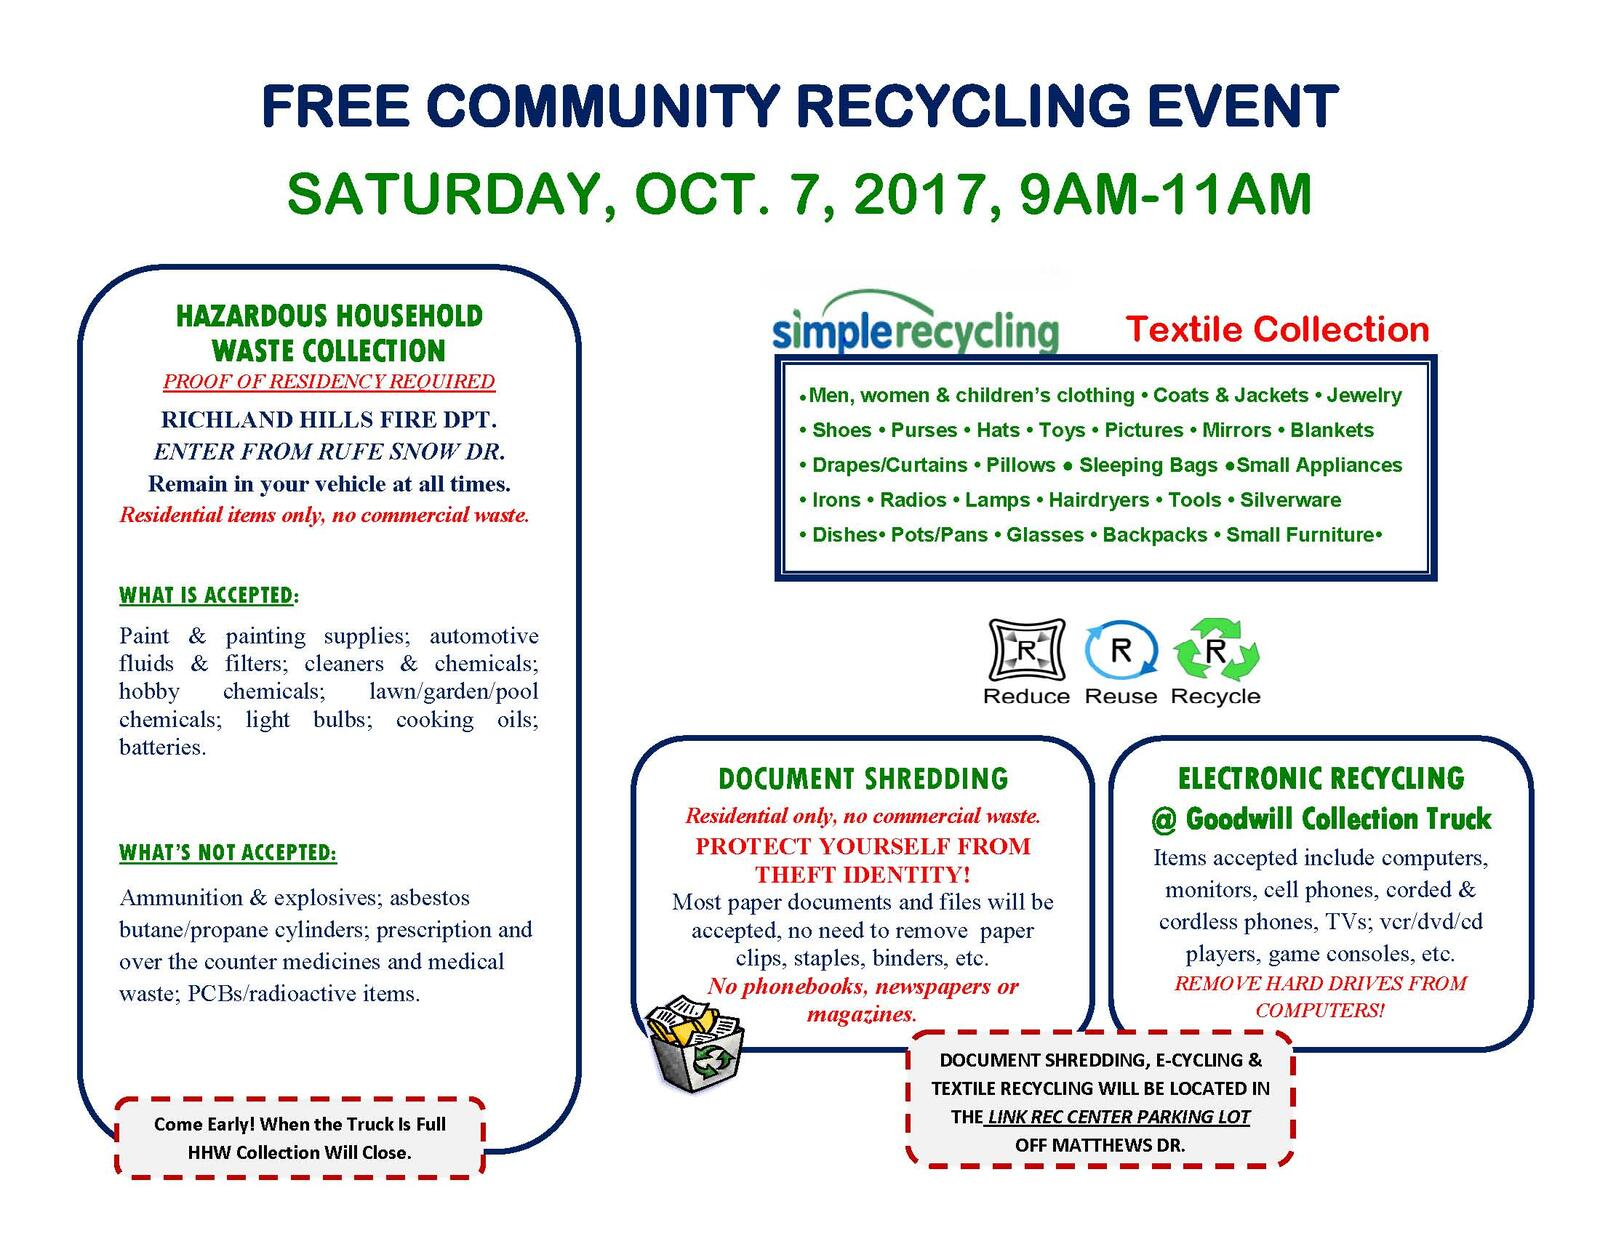 REMINDER: COMMUNITY RECYCLING EVENT THIS SAT , 10/7 9am-11am